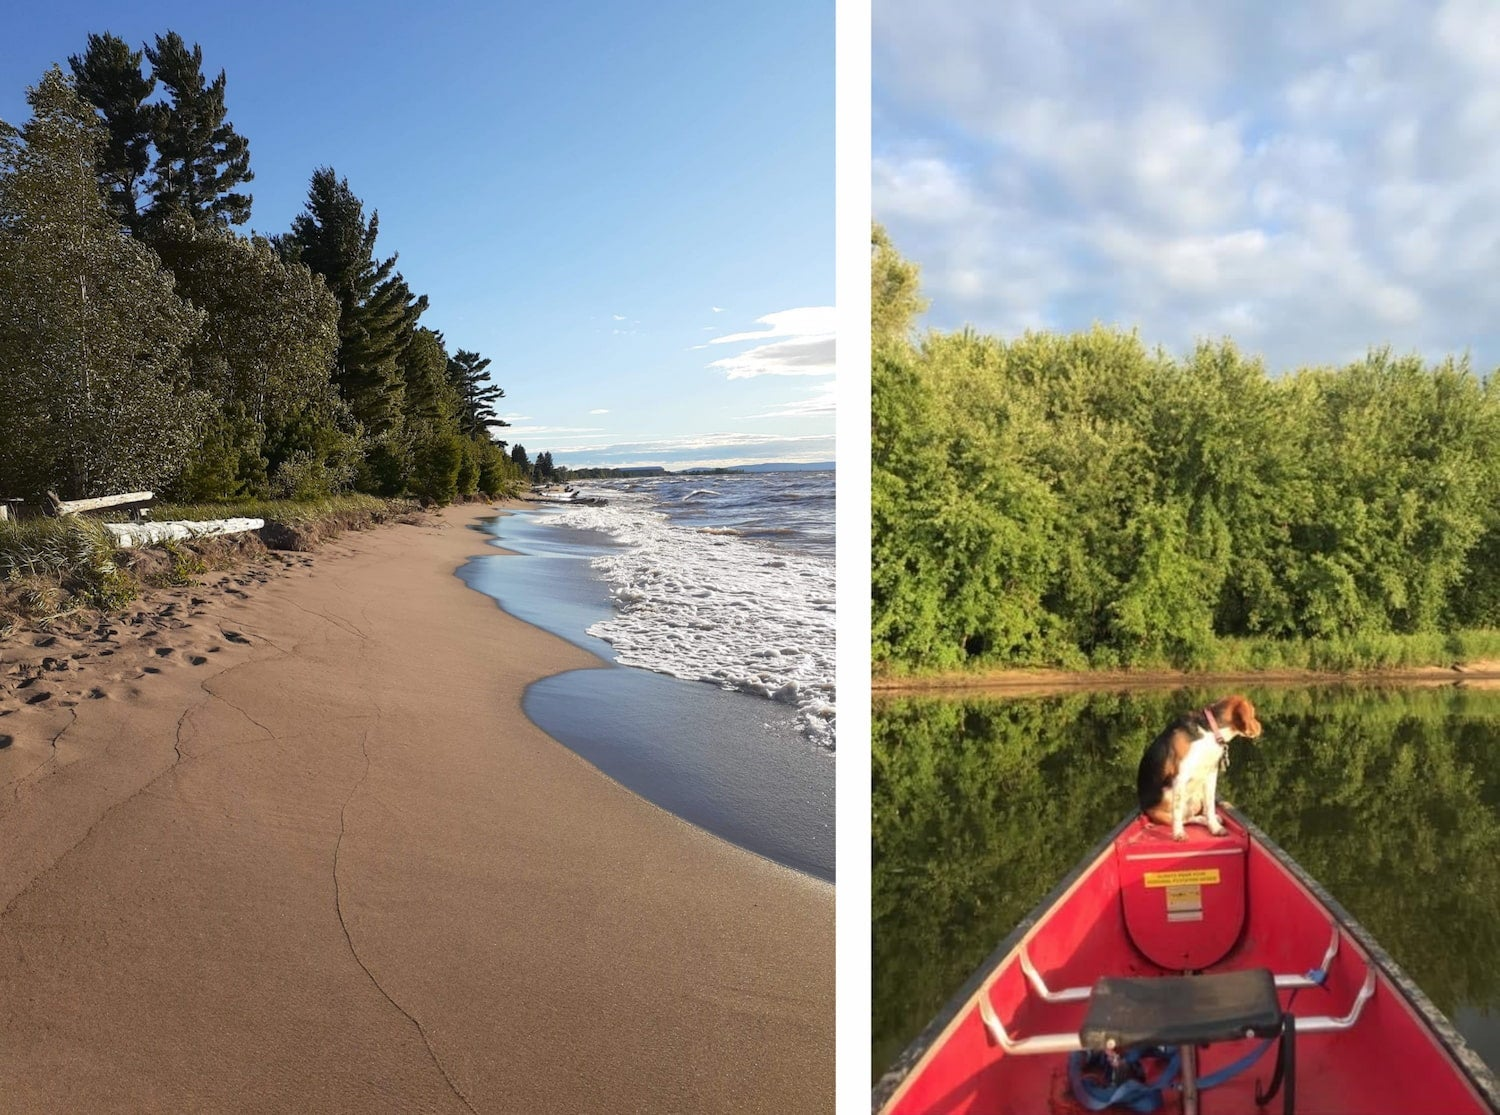 side by side images of beach and a dog on a kayak